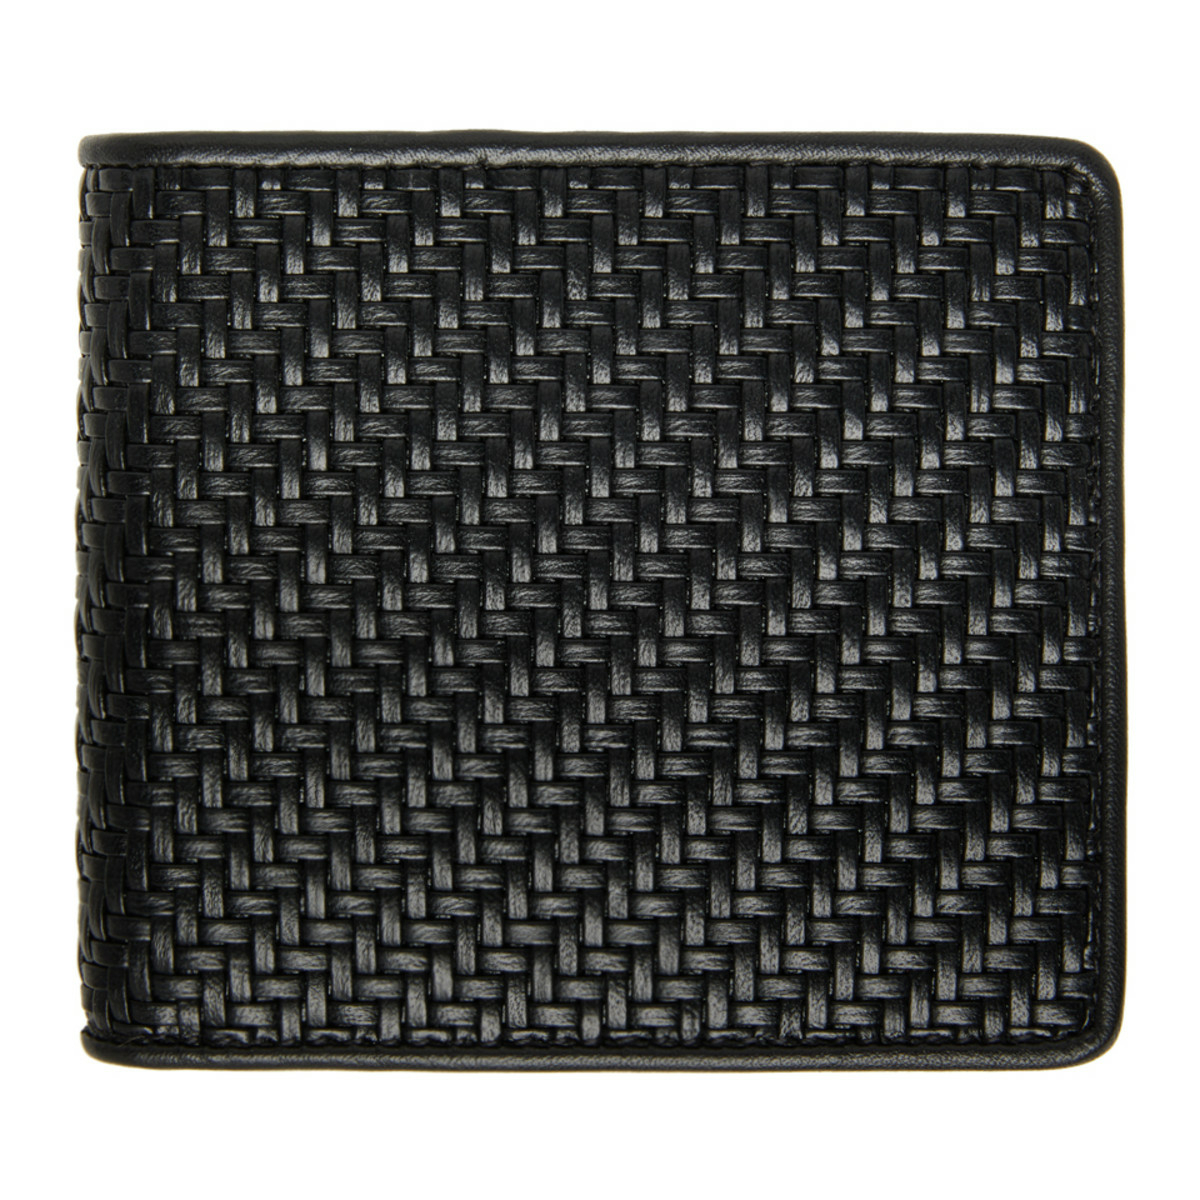 Men ACCESSORIES - GOOFASH - Mens WALLETS